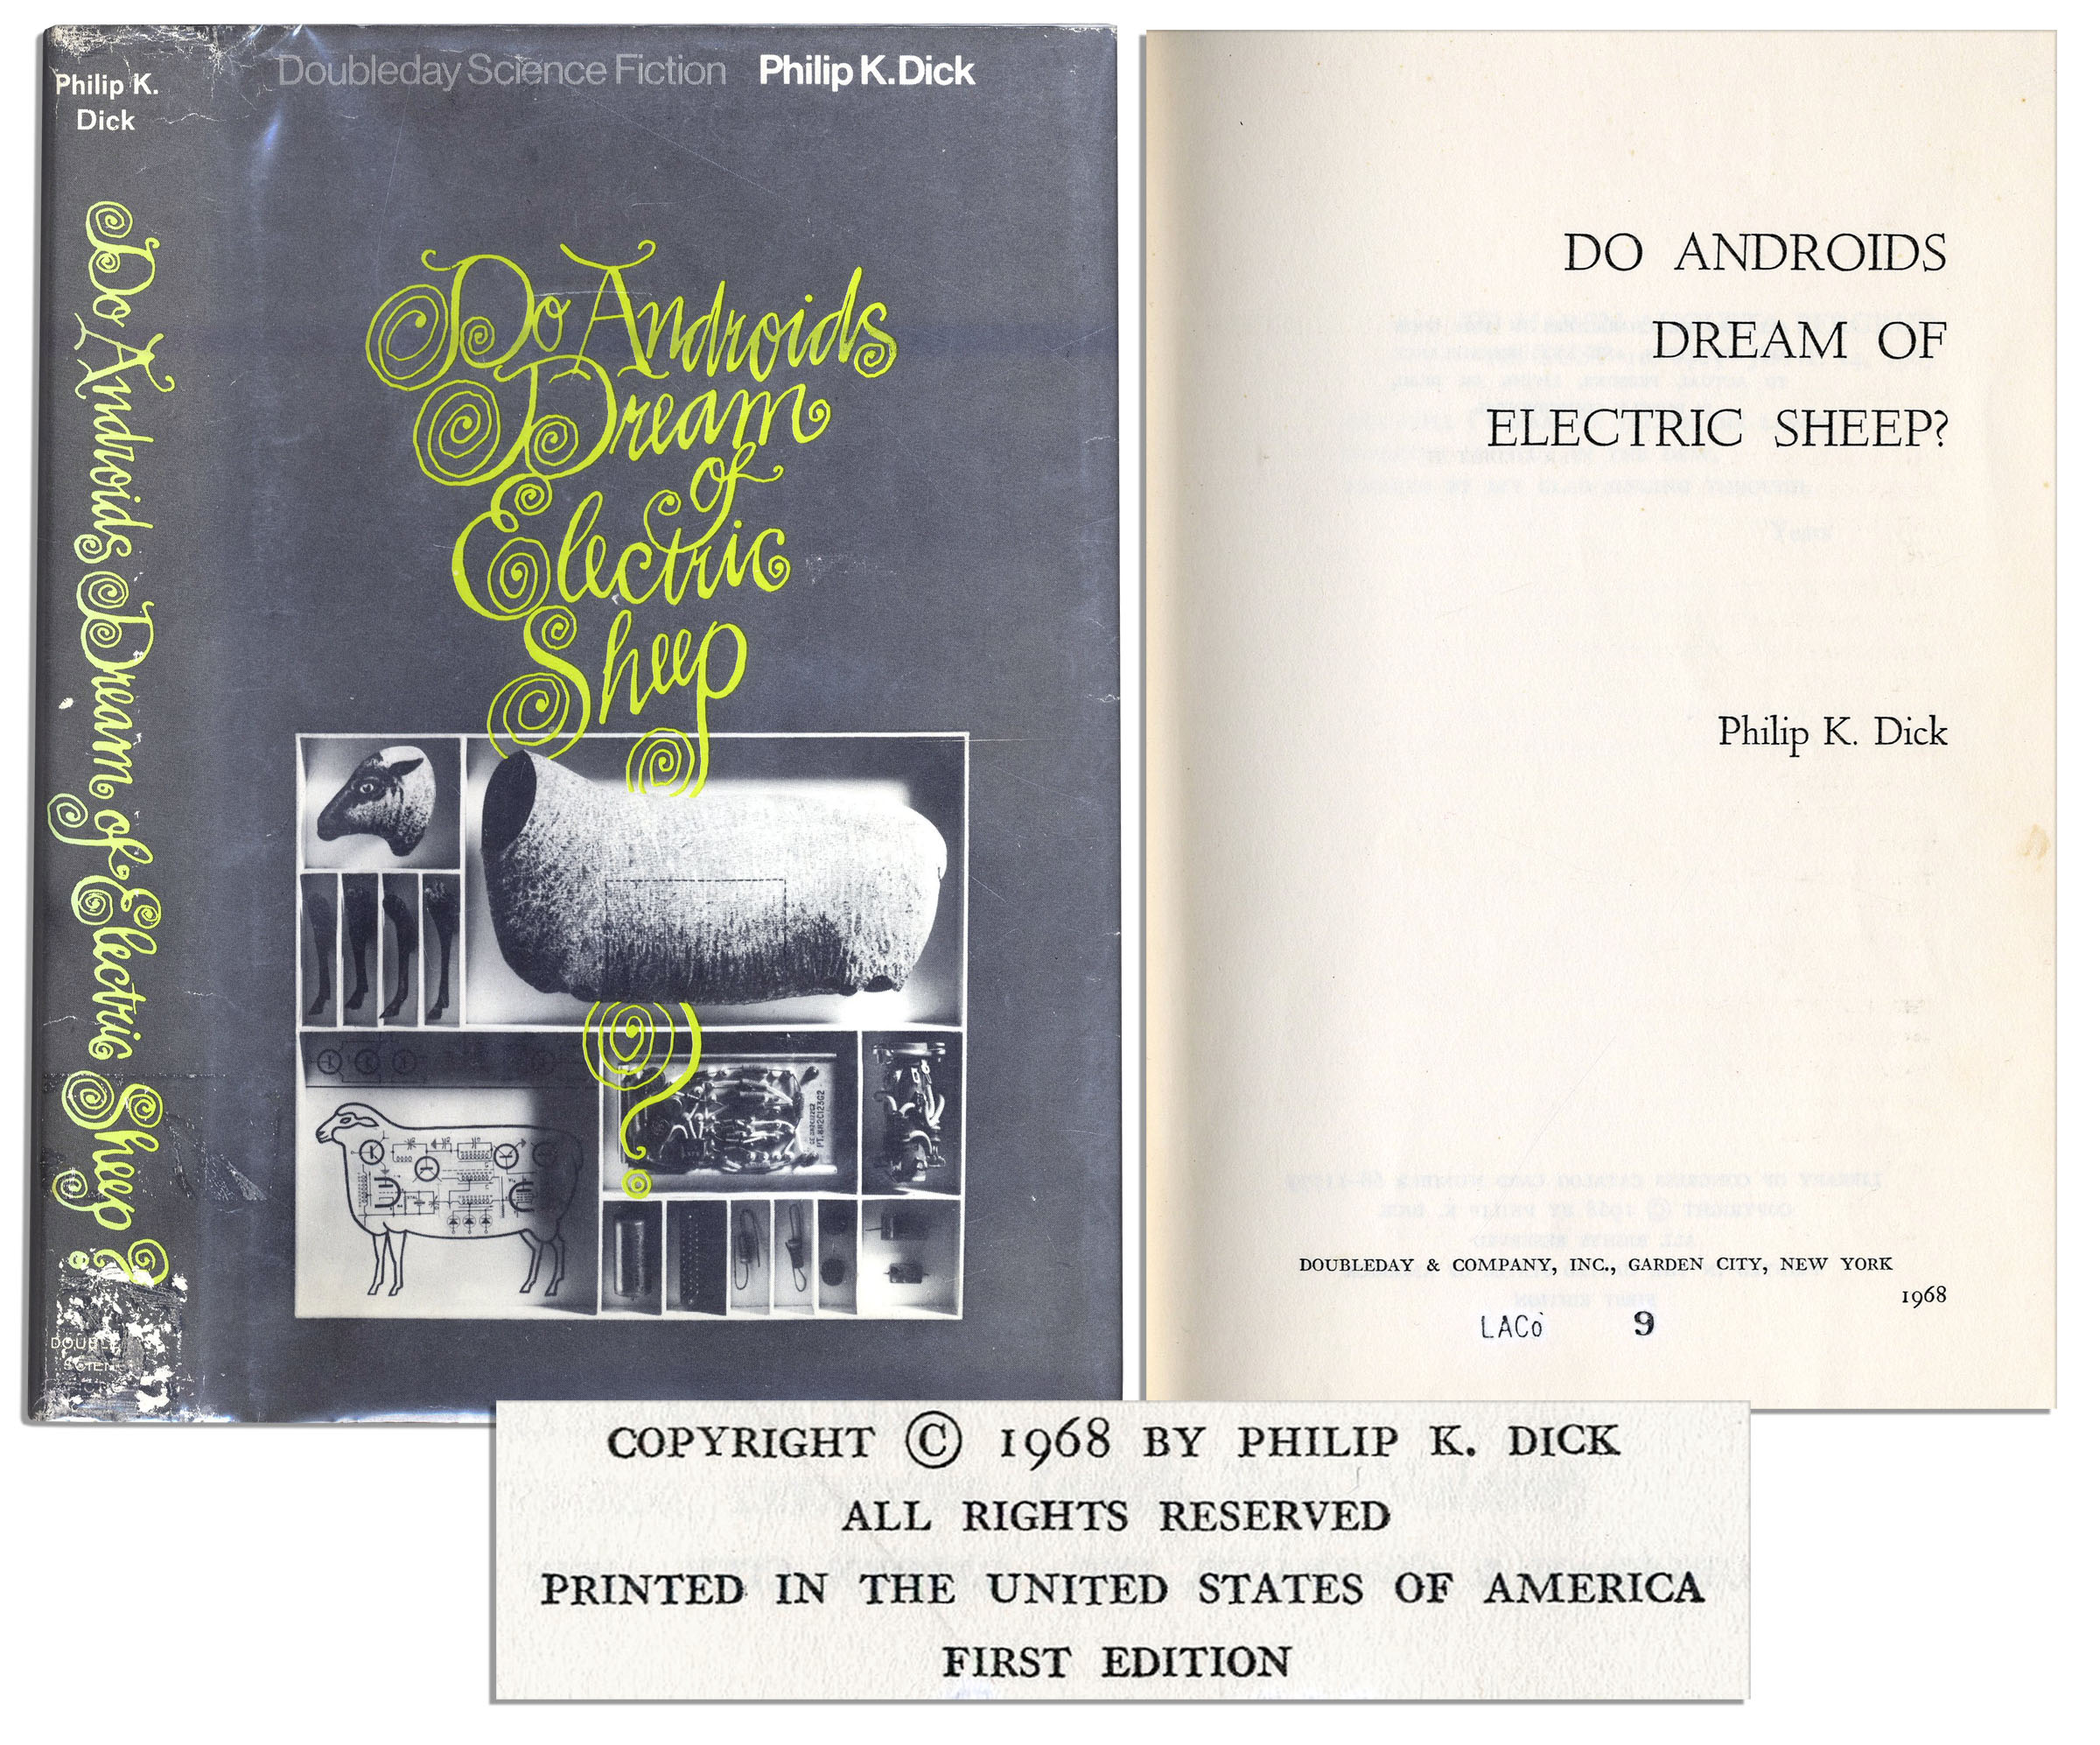 an analysis of the science fiction novel do androids dream of electric sheep by philip k dick About philip k dick philip k dick (1928-1982) was born in chicago but lived in california for most of his life he went to college at berkeley for a year, ran a record store and had his own classical-music show on a local radio station.